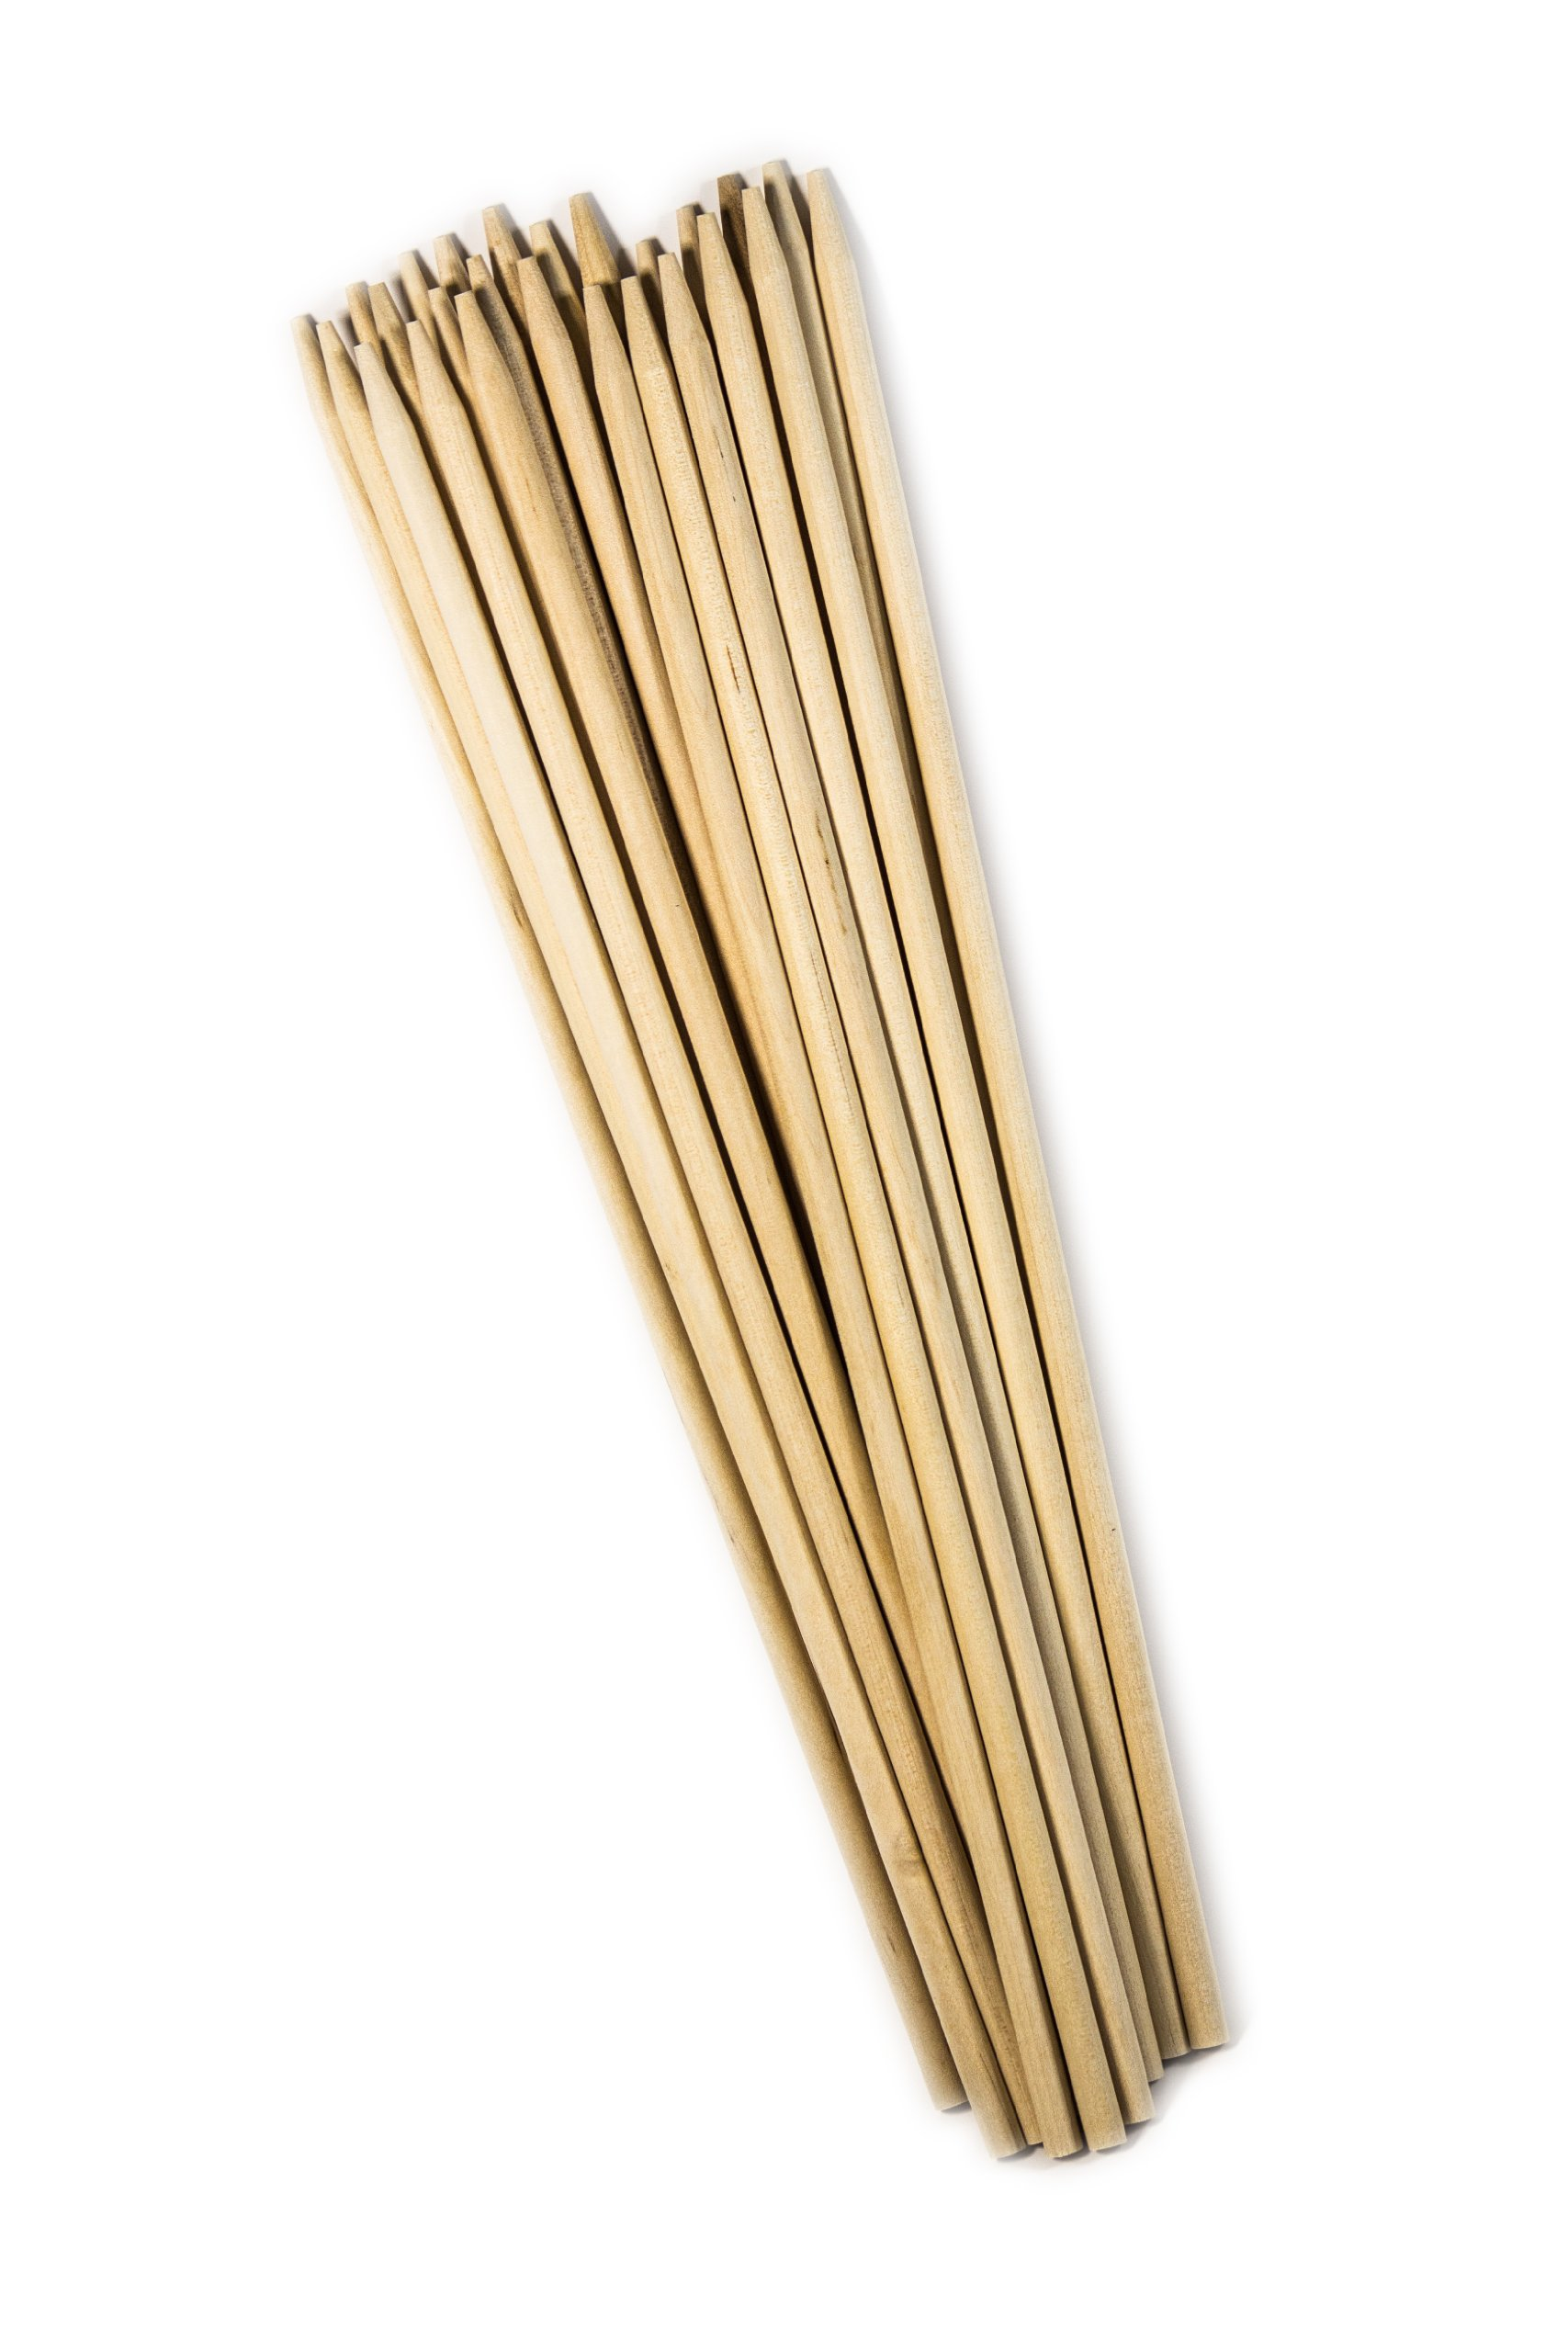 Perfect Stix Wooden Semi Pointed Corn Dog/Concession Skewer Sticks 10'' Length (pack of 2500)